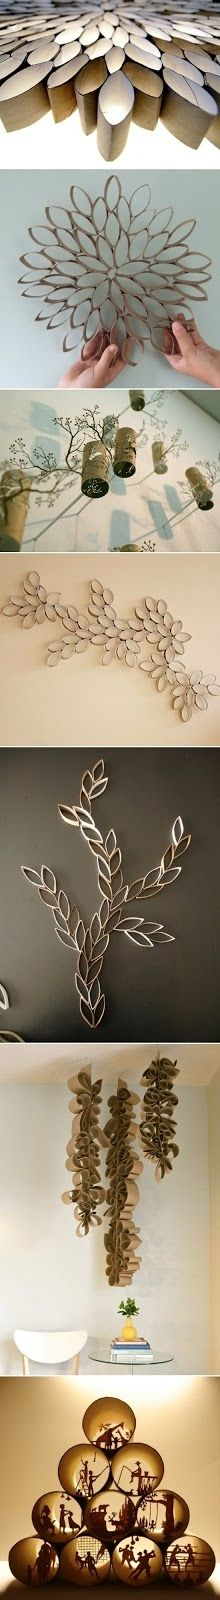 toilet paper roll art my love affair with brown paper. Black Bedroom Furniture Sets. Home Design Ideas